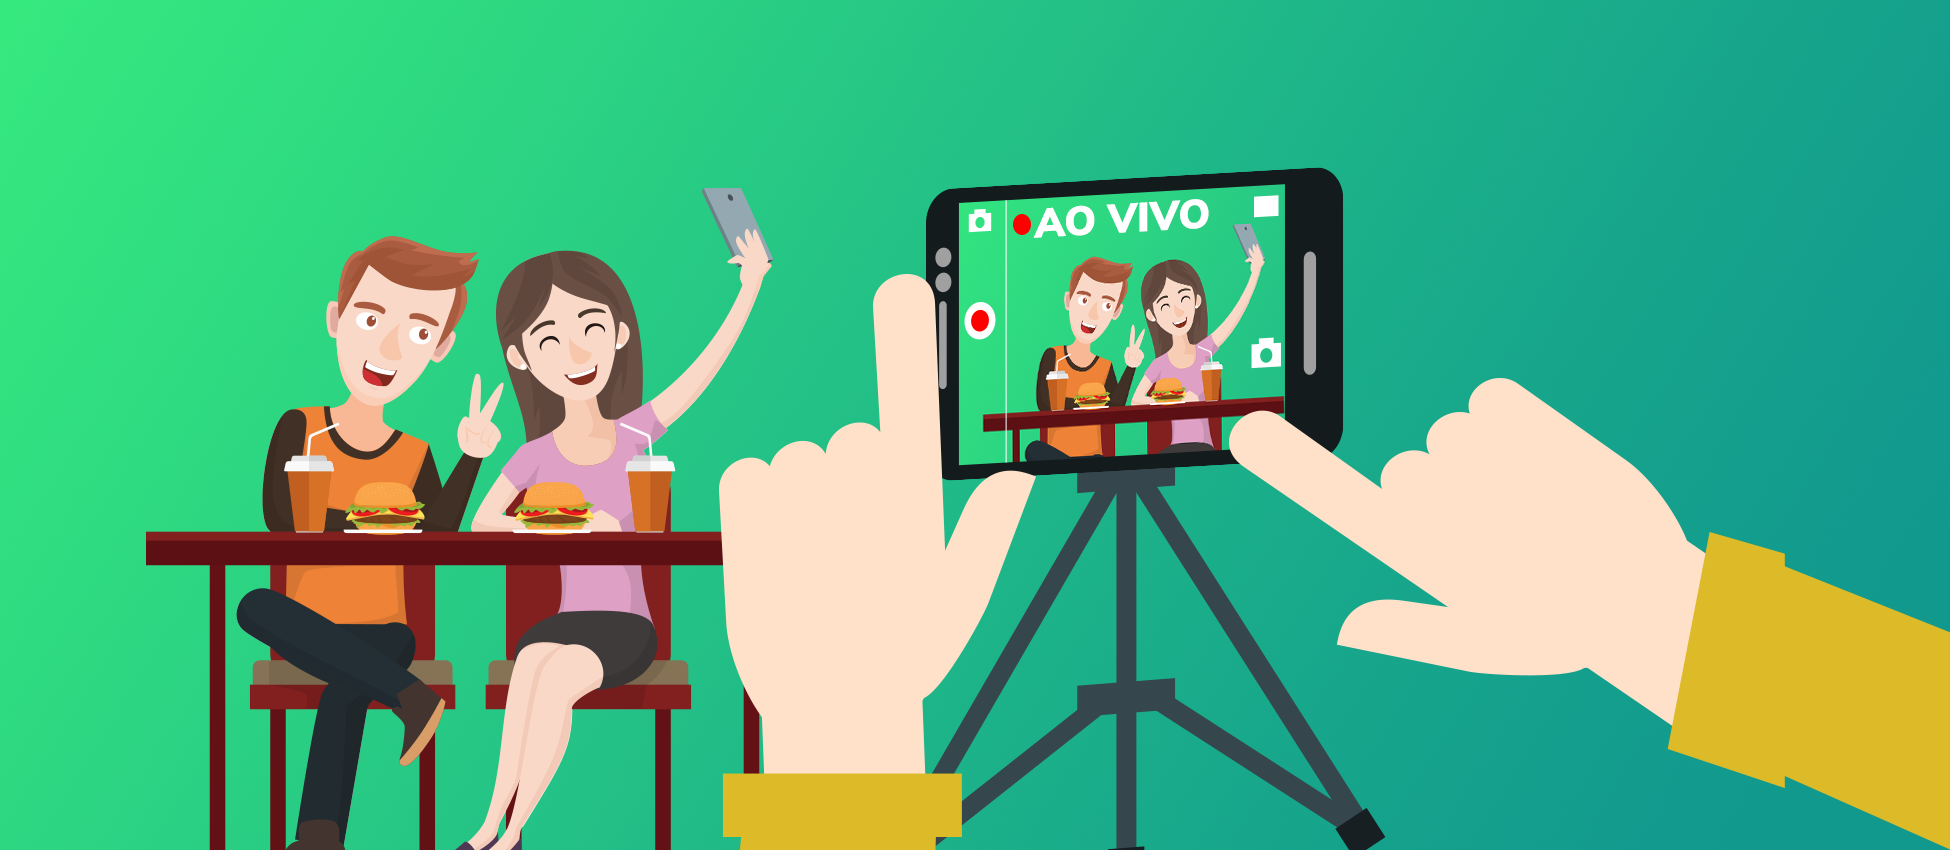 lives - Vídeo ao Vivo